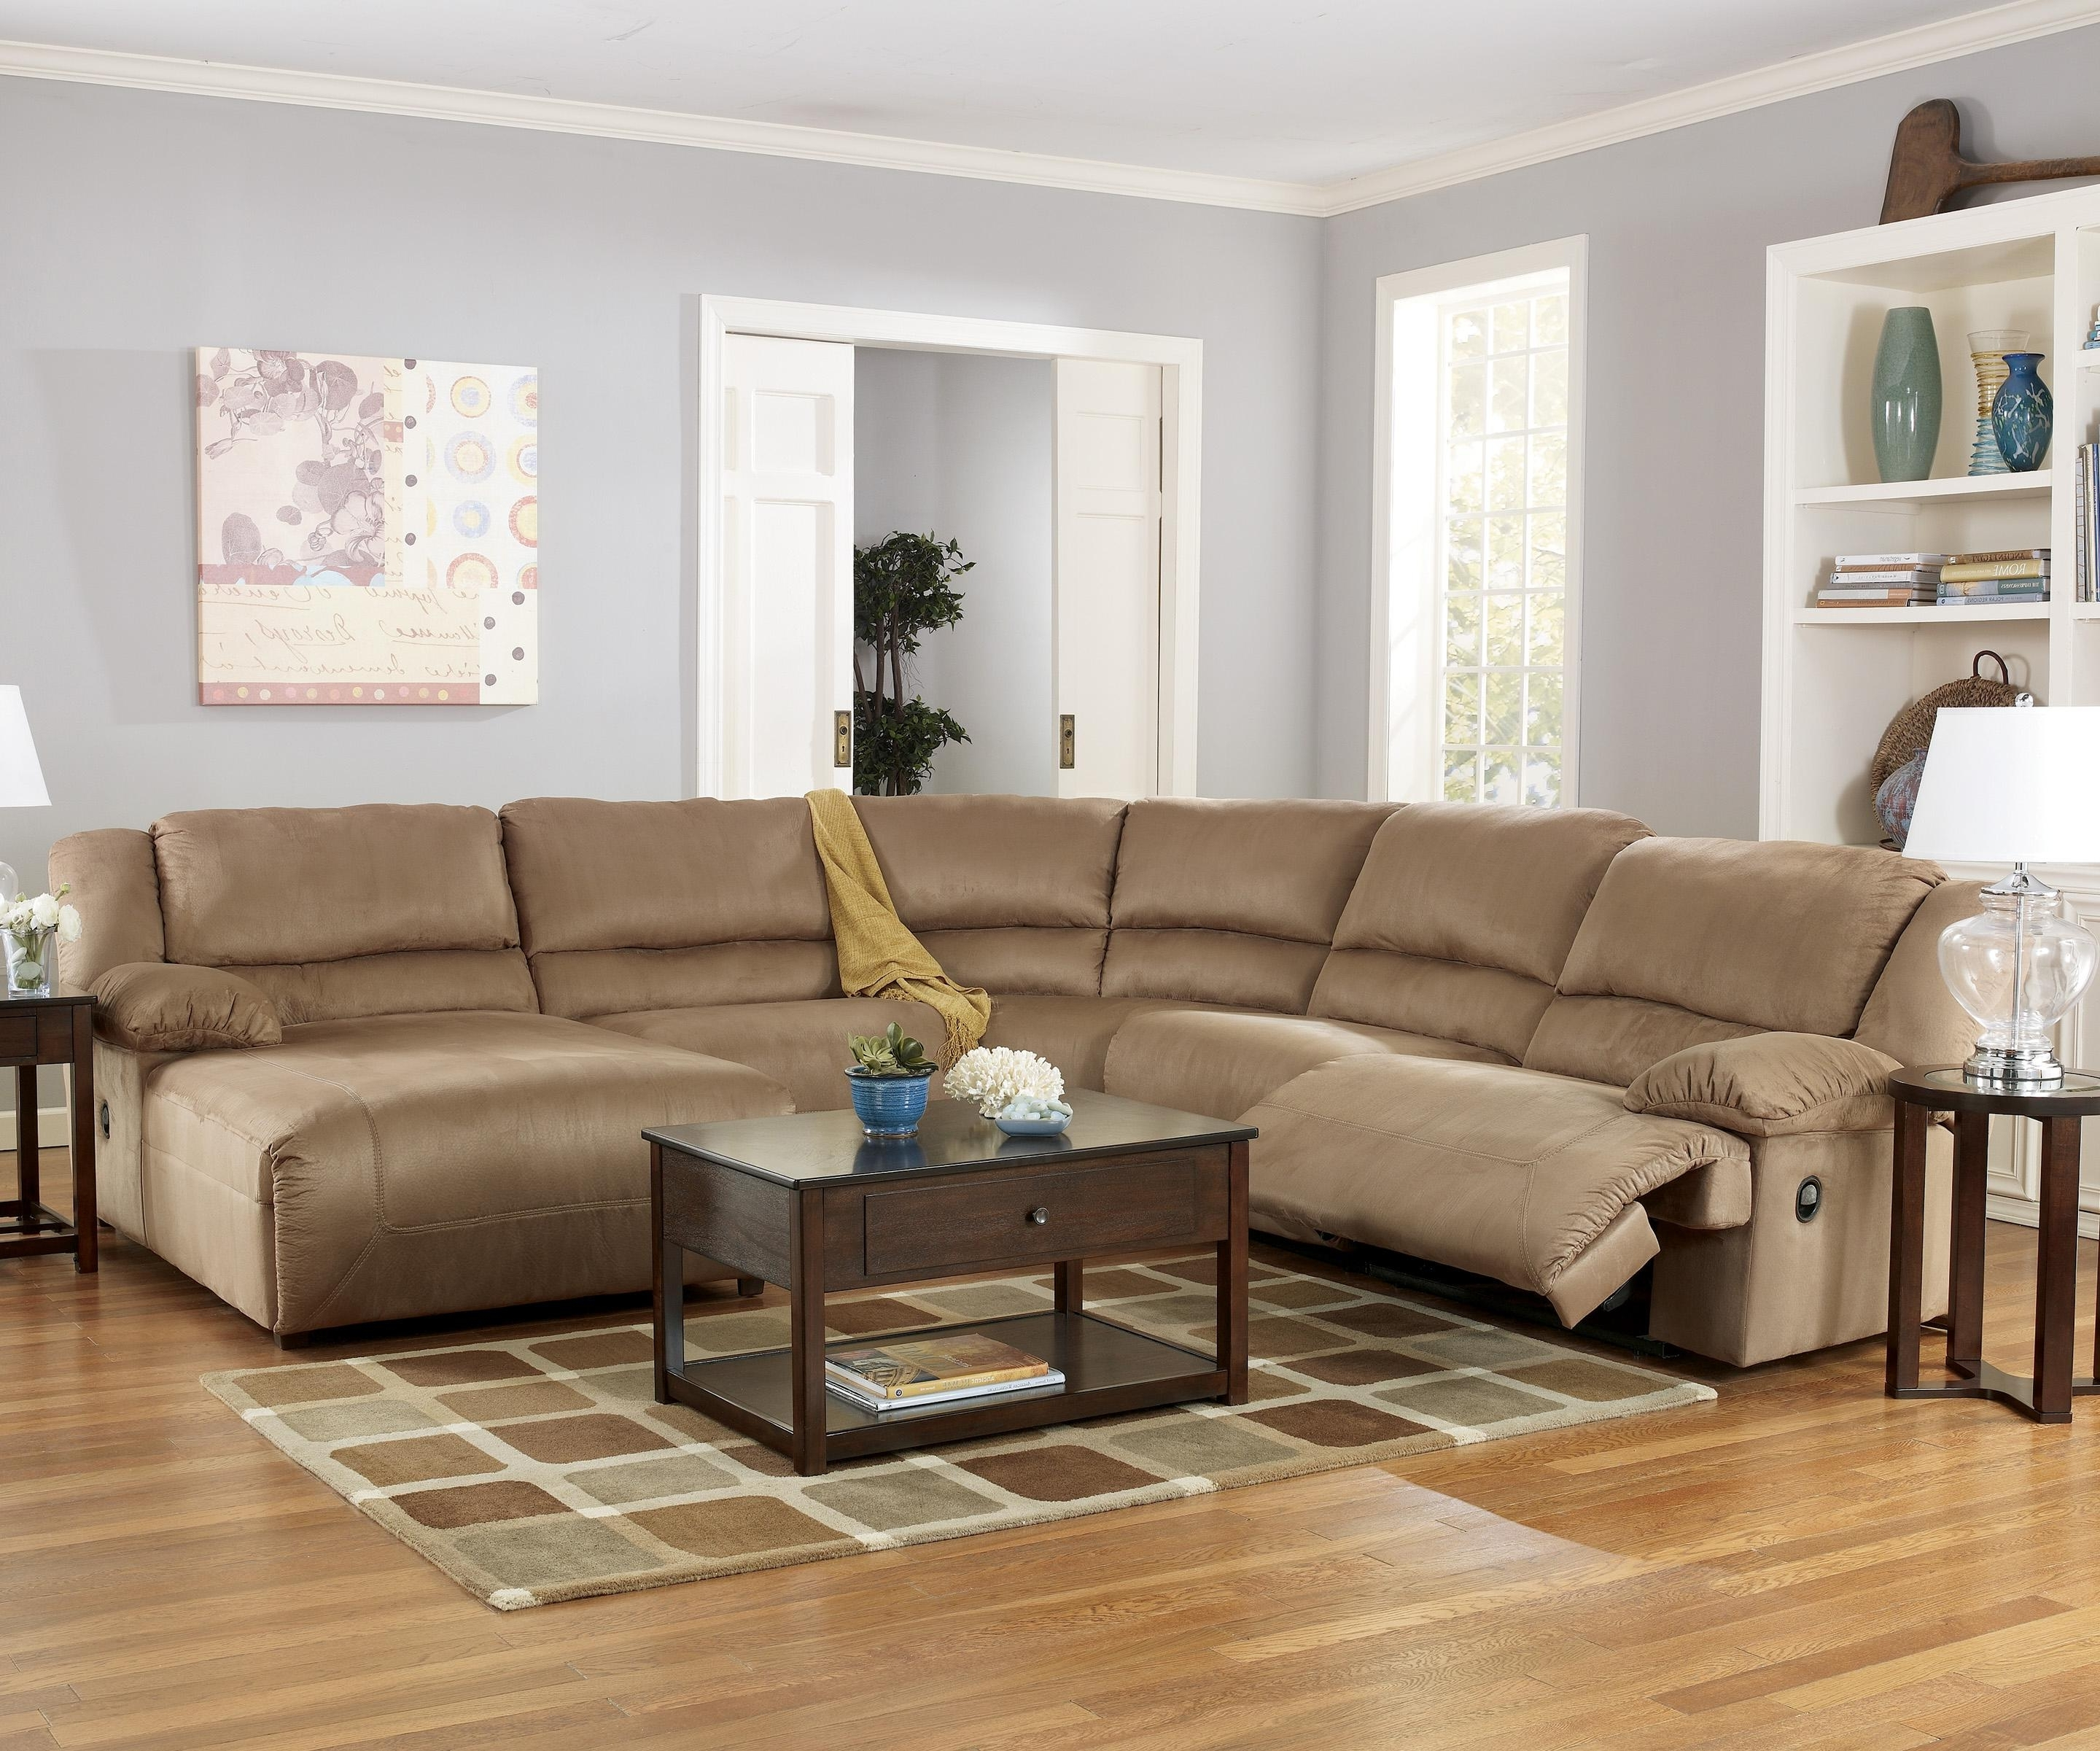 Sectional Sofas Under 300 In Favorite Orlando Sectional Sofas (View 17 of 20)